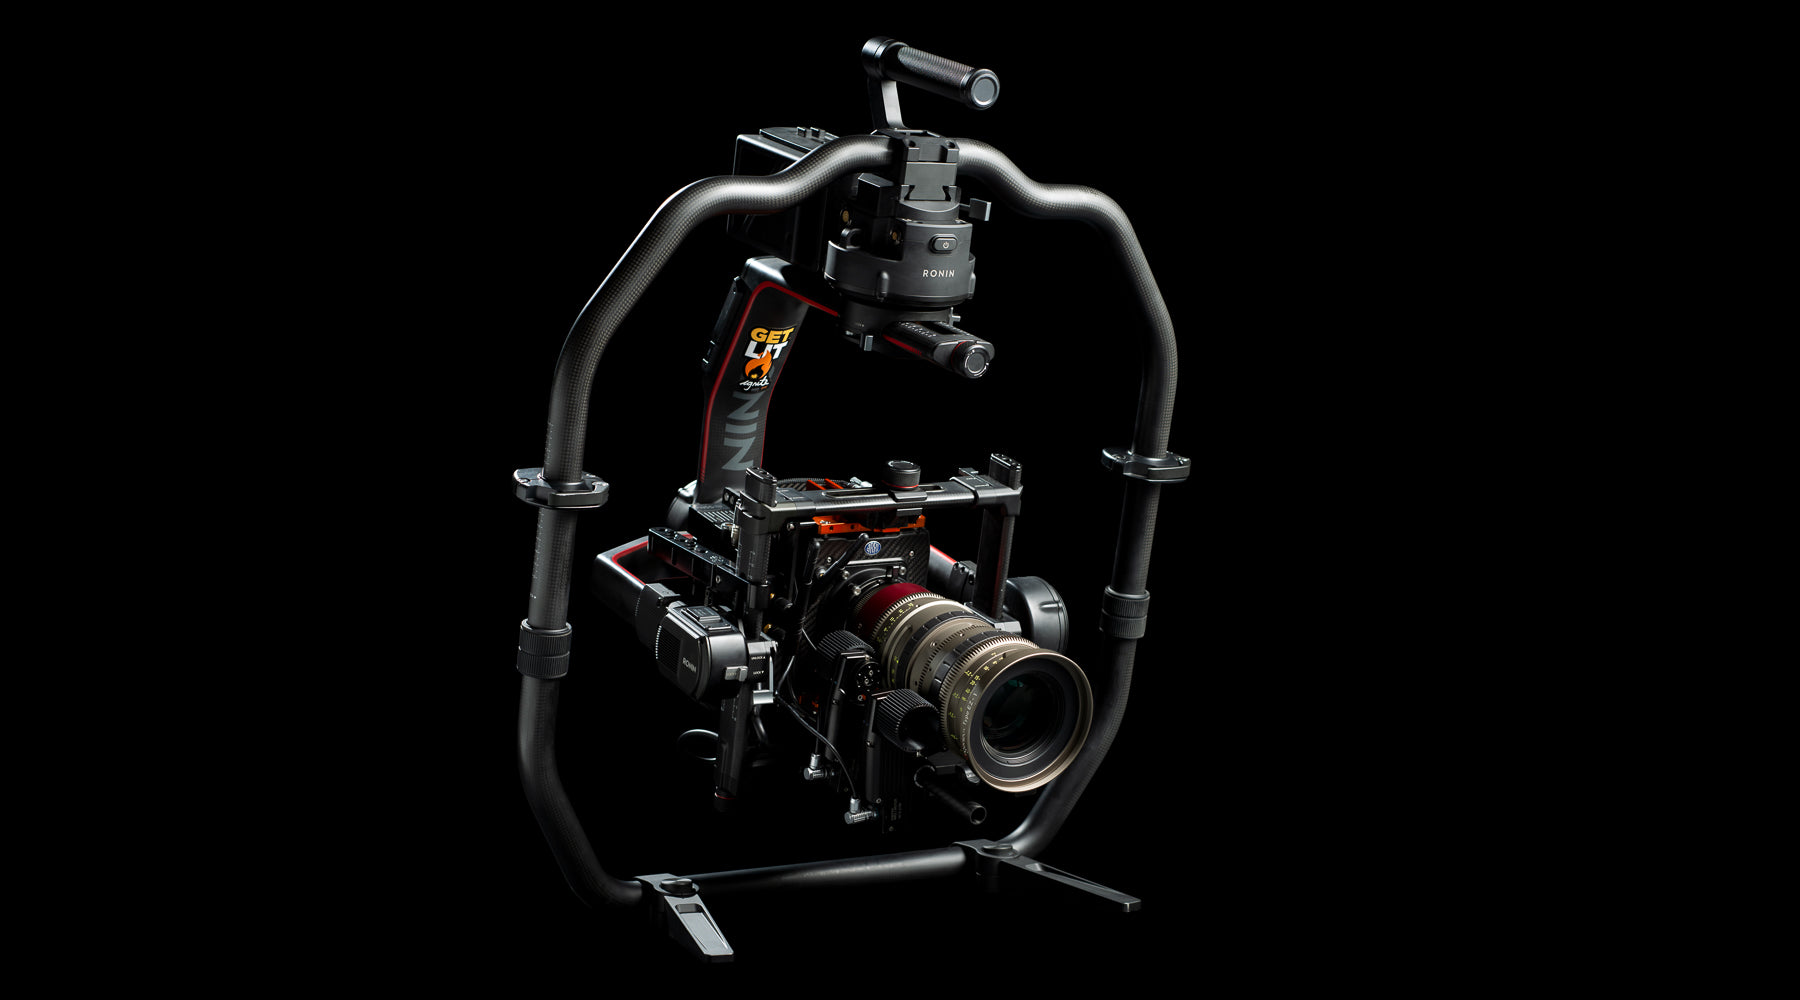 Pro packages for MoVI Pro or Ronin 2